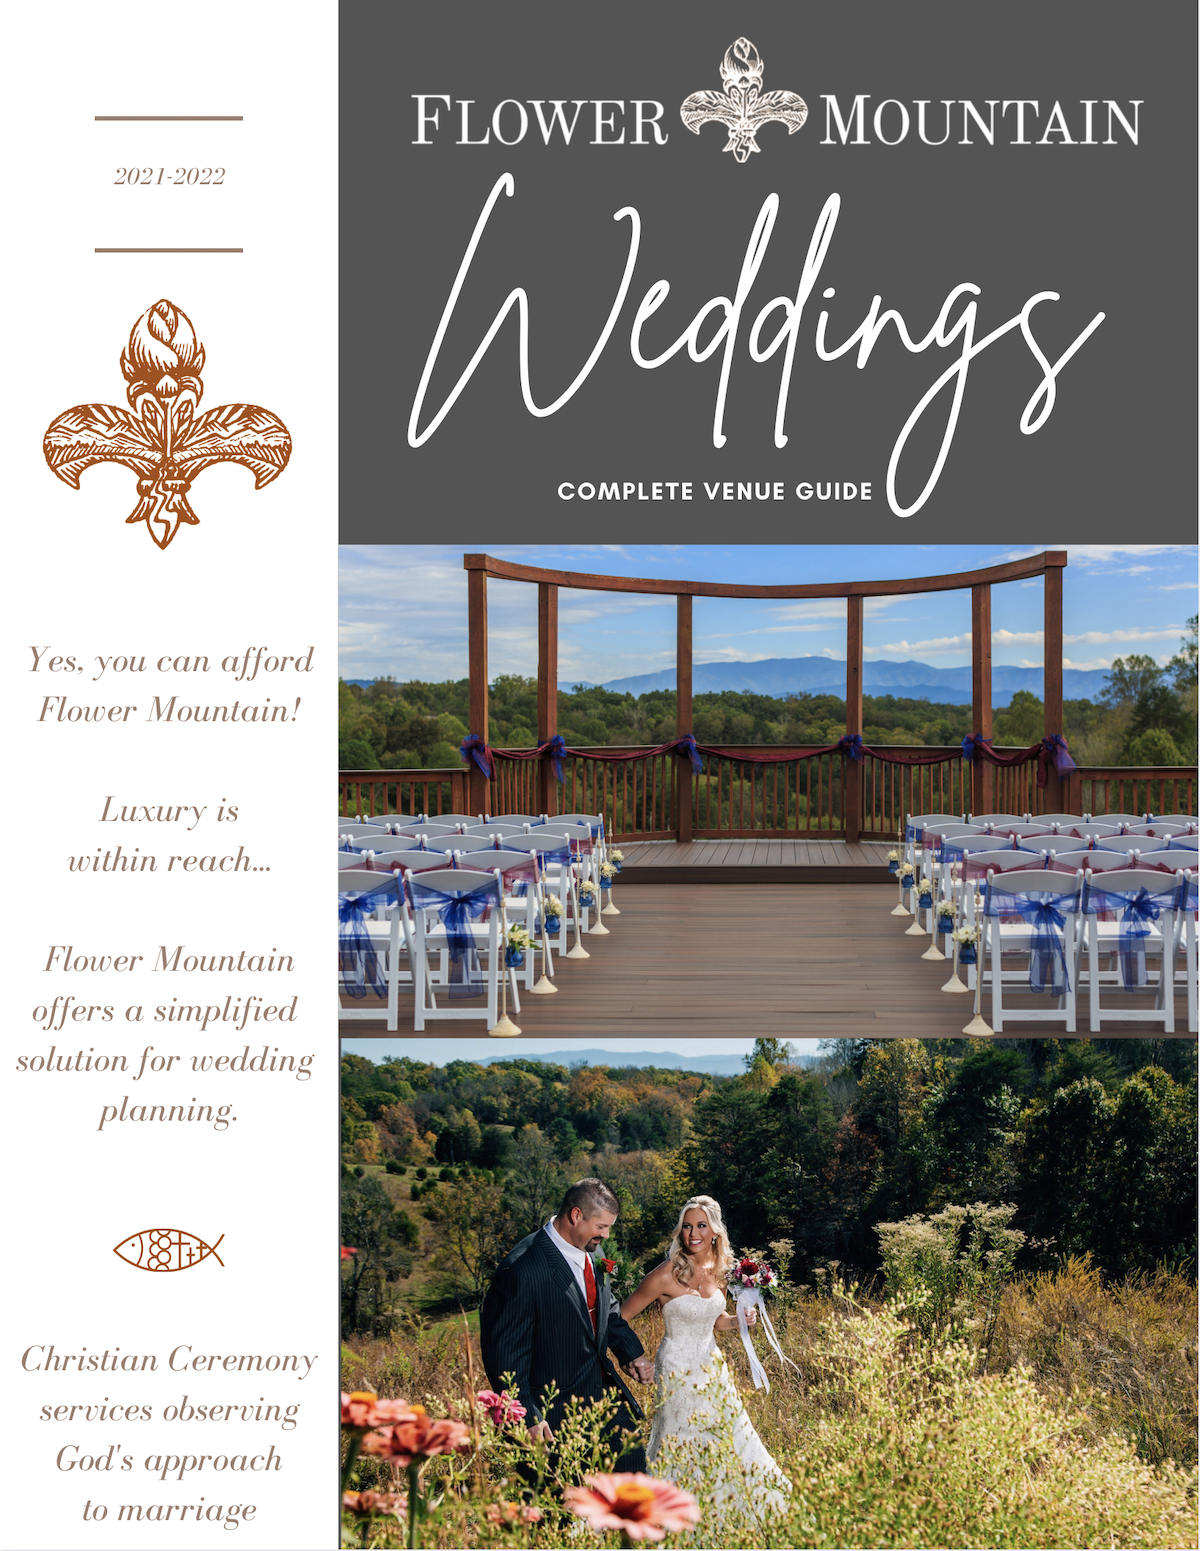 the flower mountain wedding venue PDF document preview for pricing